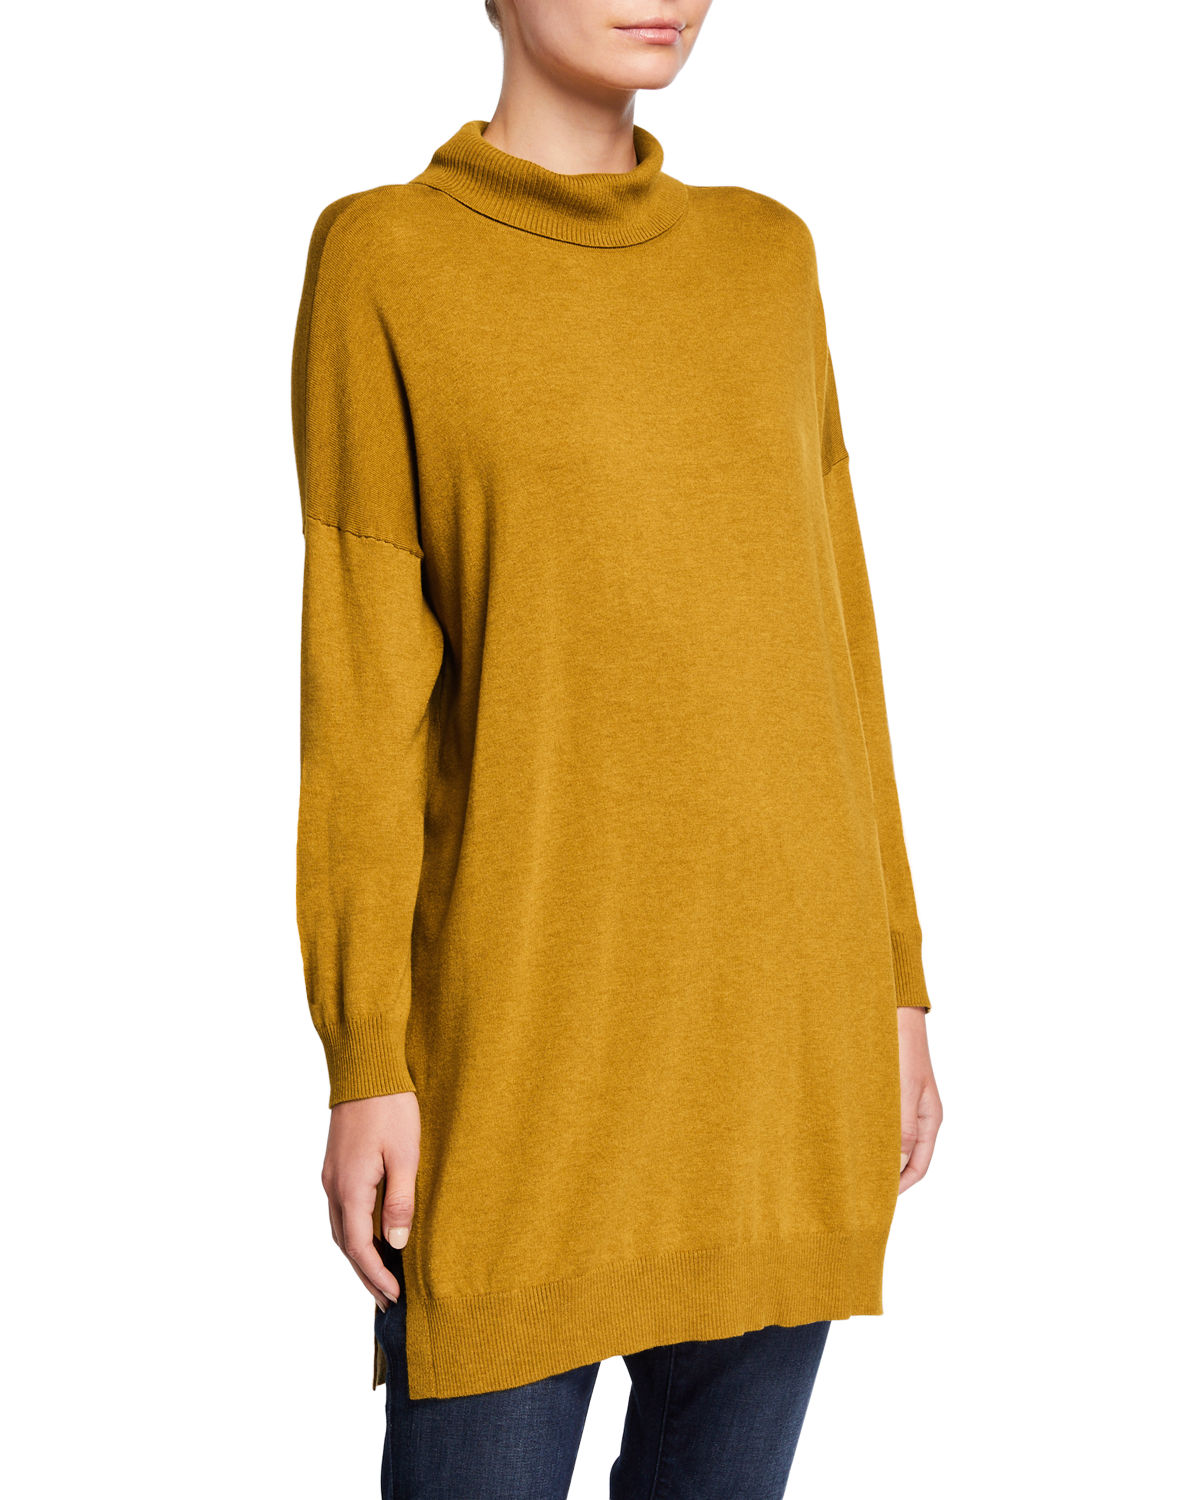 Eileen Fisher Tunics PLUS SIZE LIGHTWEIGHT COZY TURTLENECK TUNIC